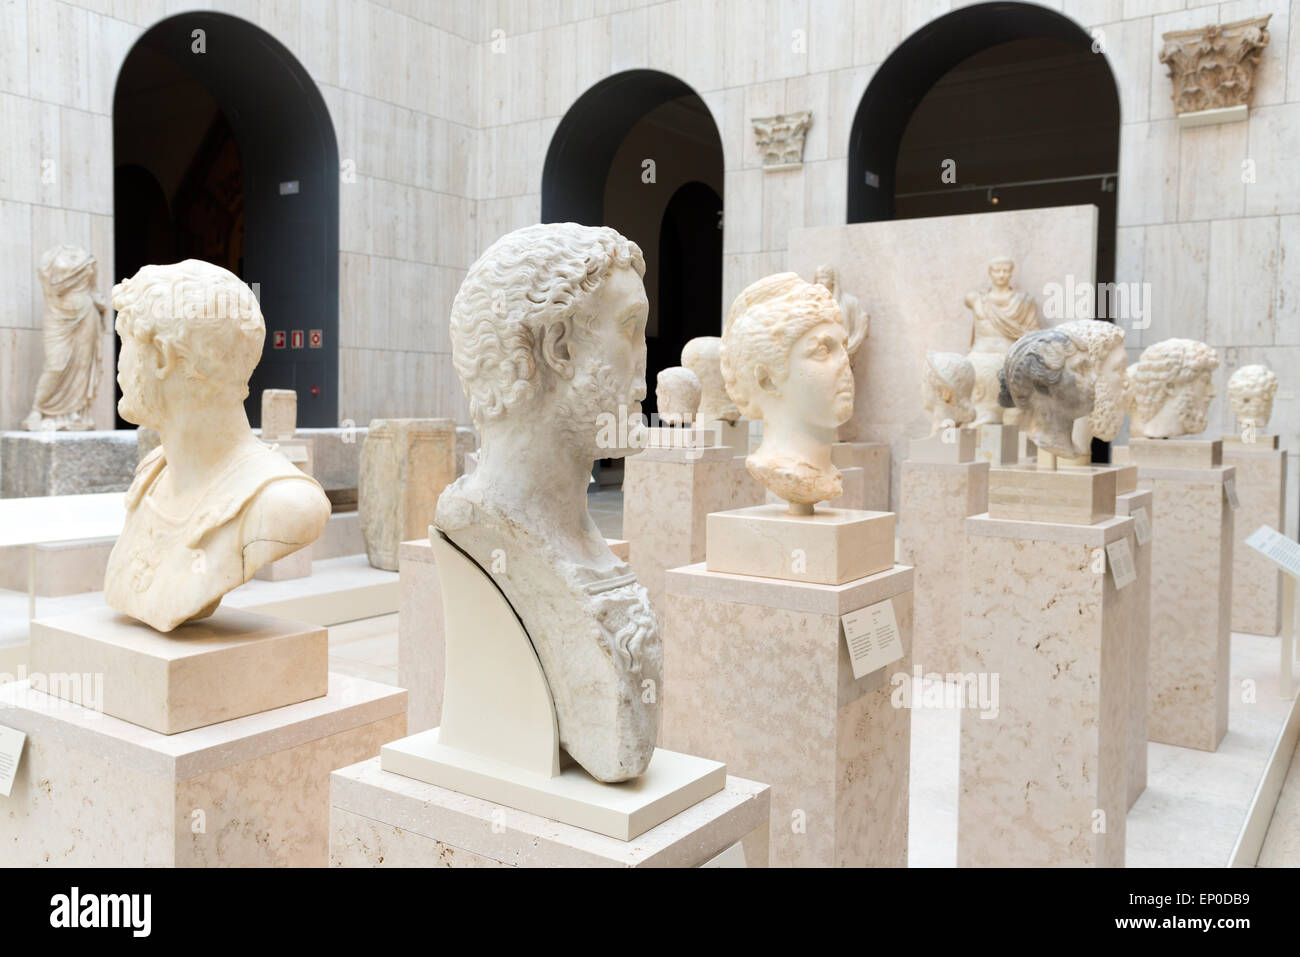 Ancient marble busts of Roman emperors in the National Archaeological Museum of Spain, Madrid Stock Photo